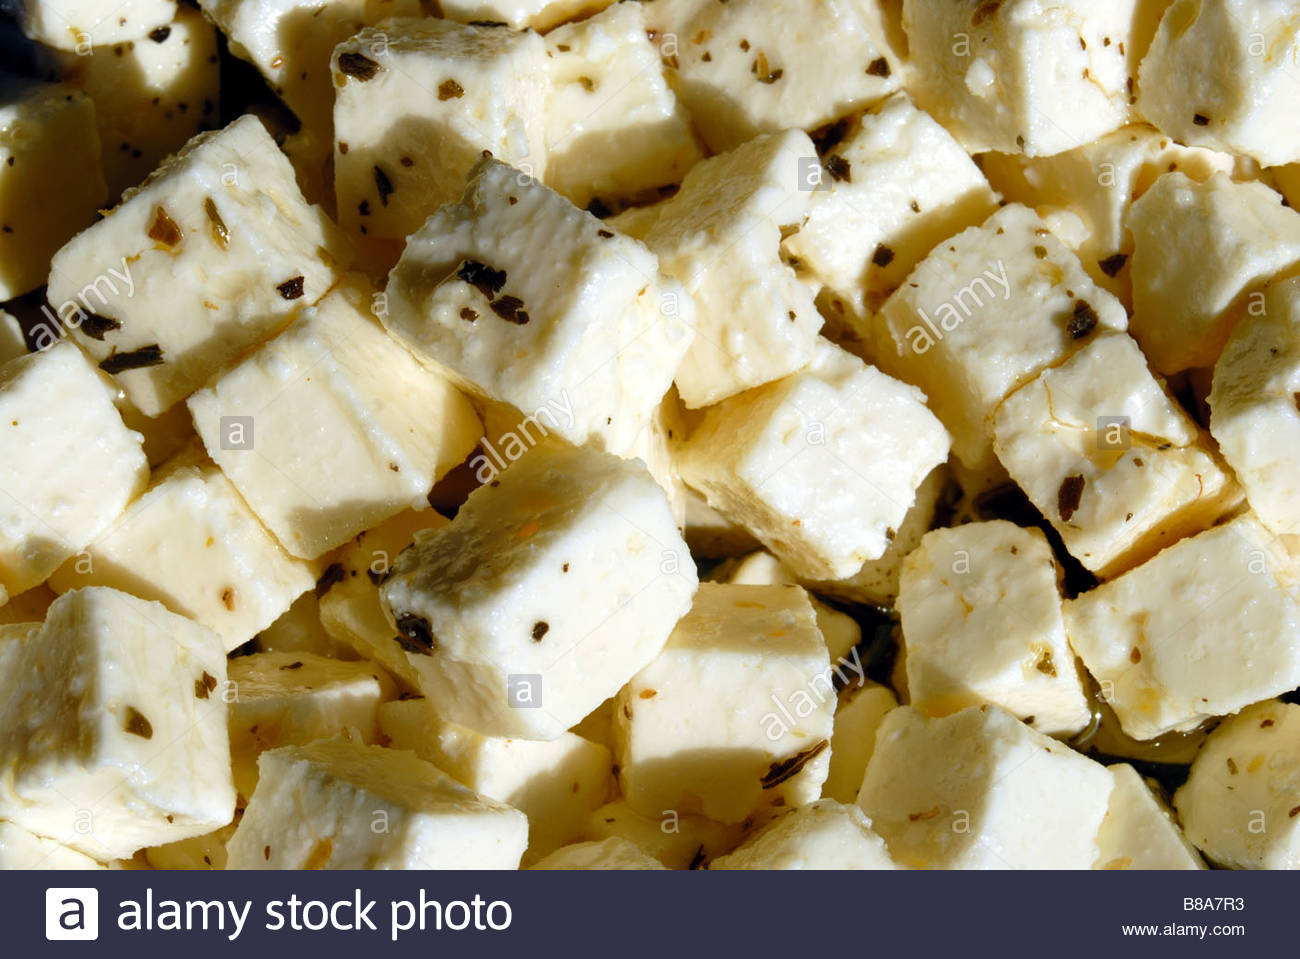 Blocks of Mediterreanean style cheese in oil and herbs. - Stock Image